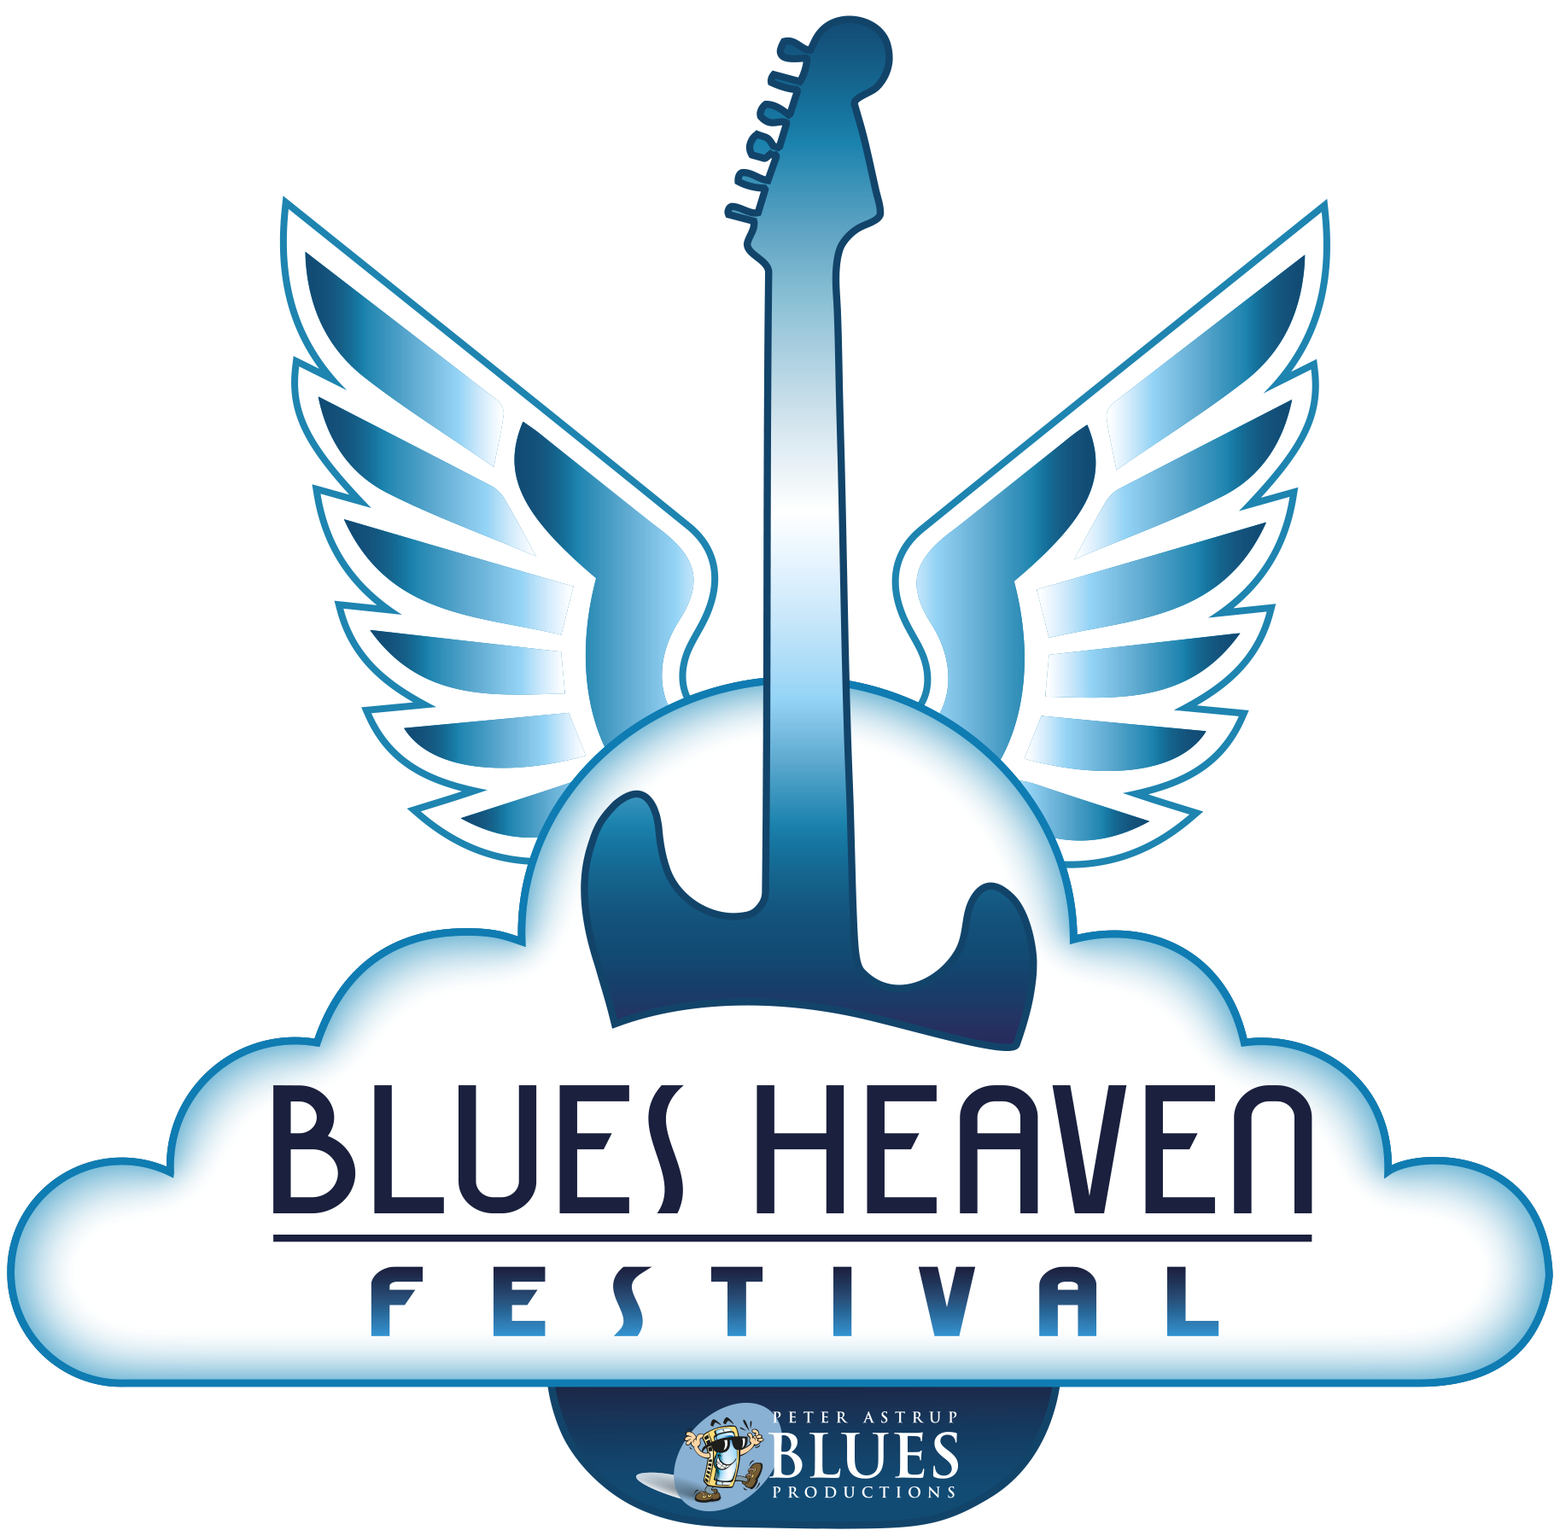 image of the logo for Blues Heaven Festival in Denmark